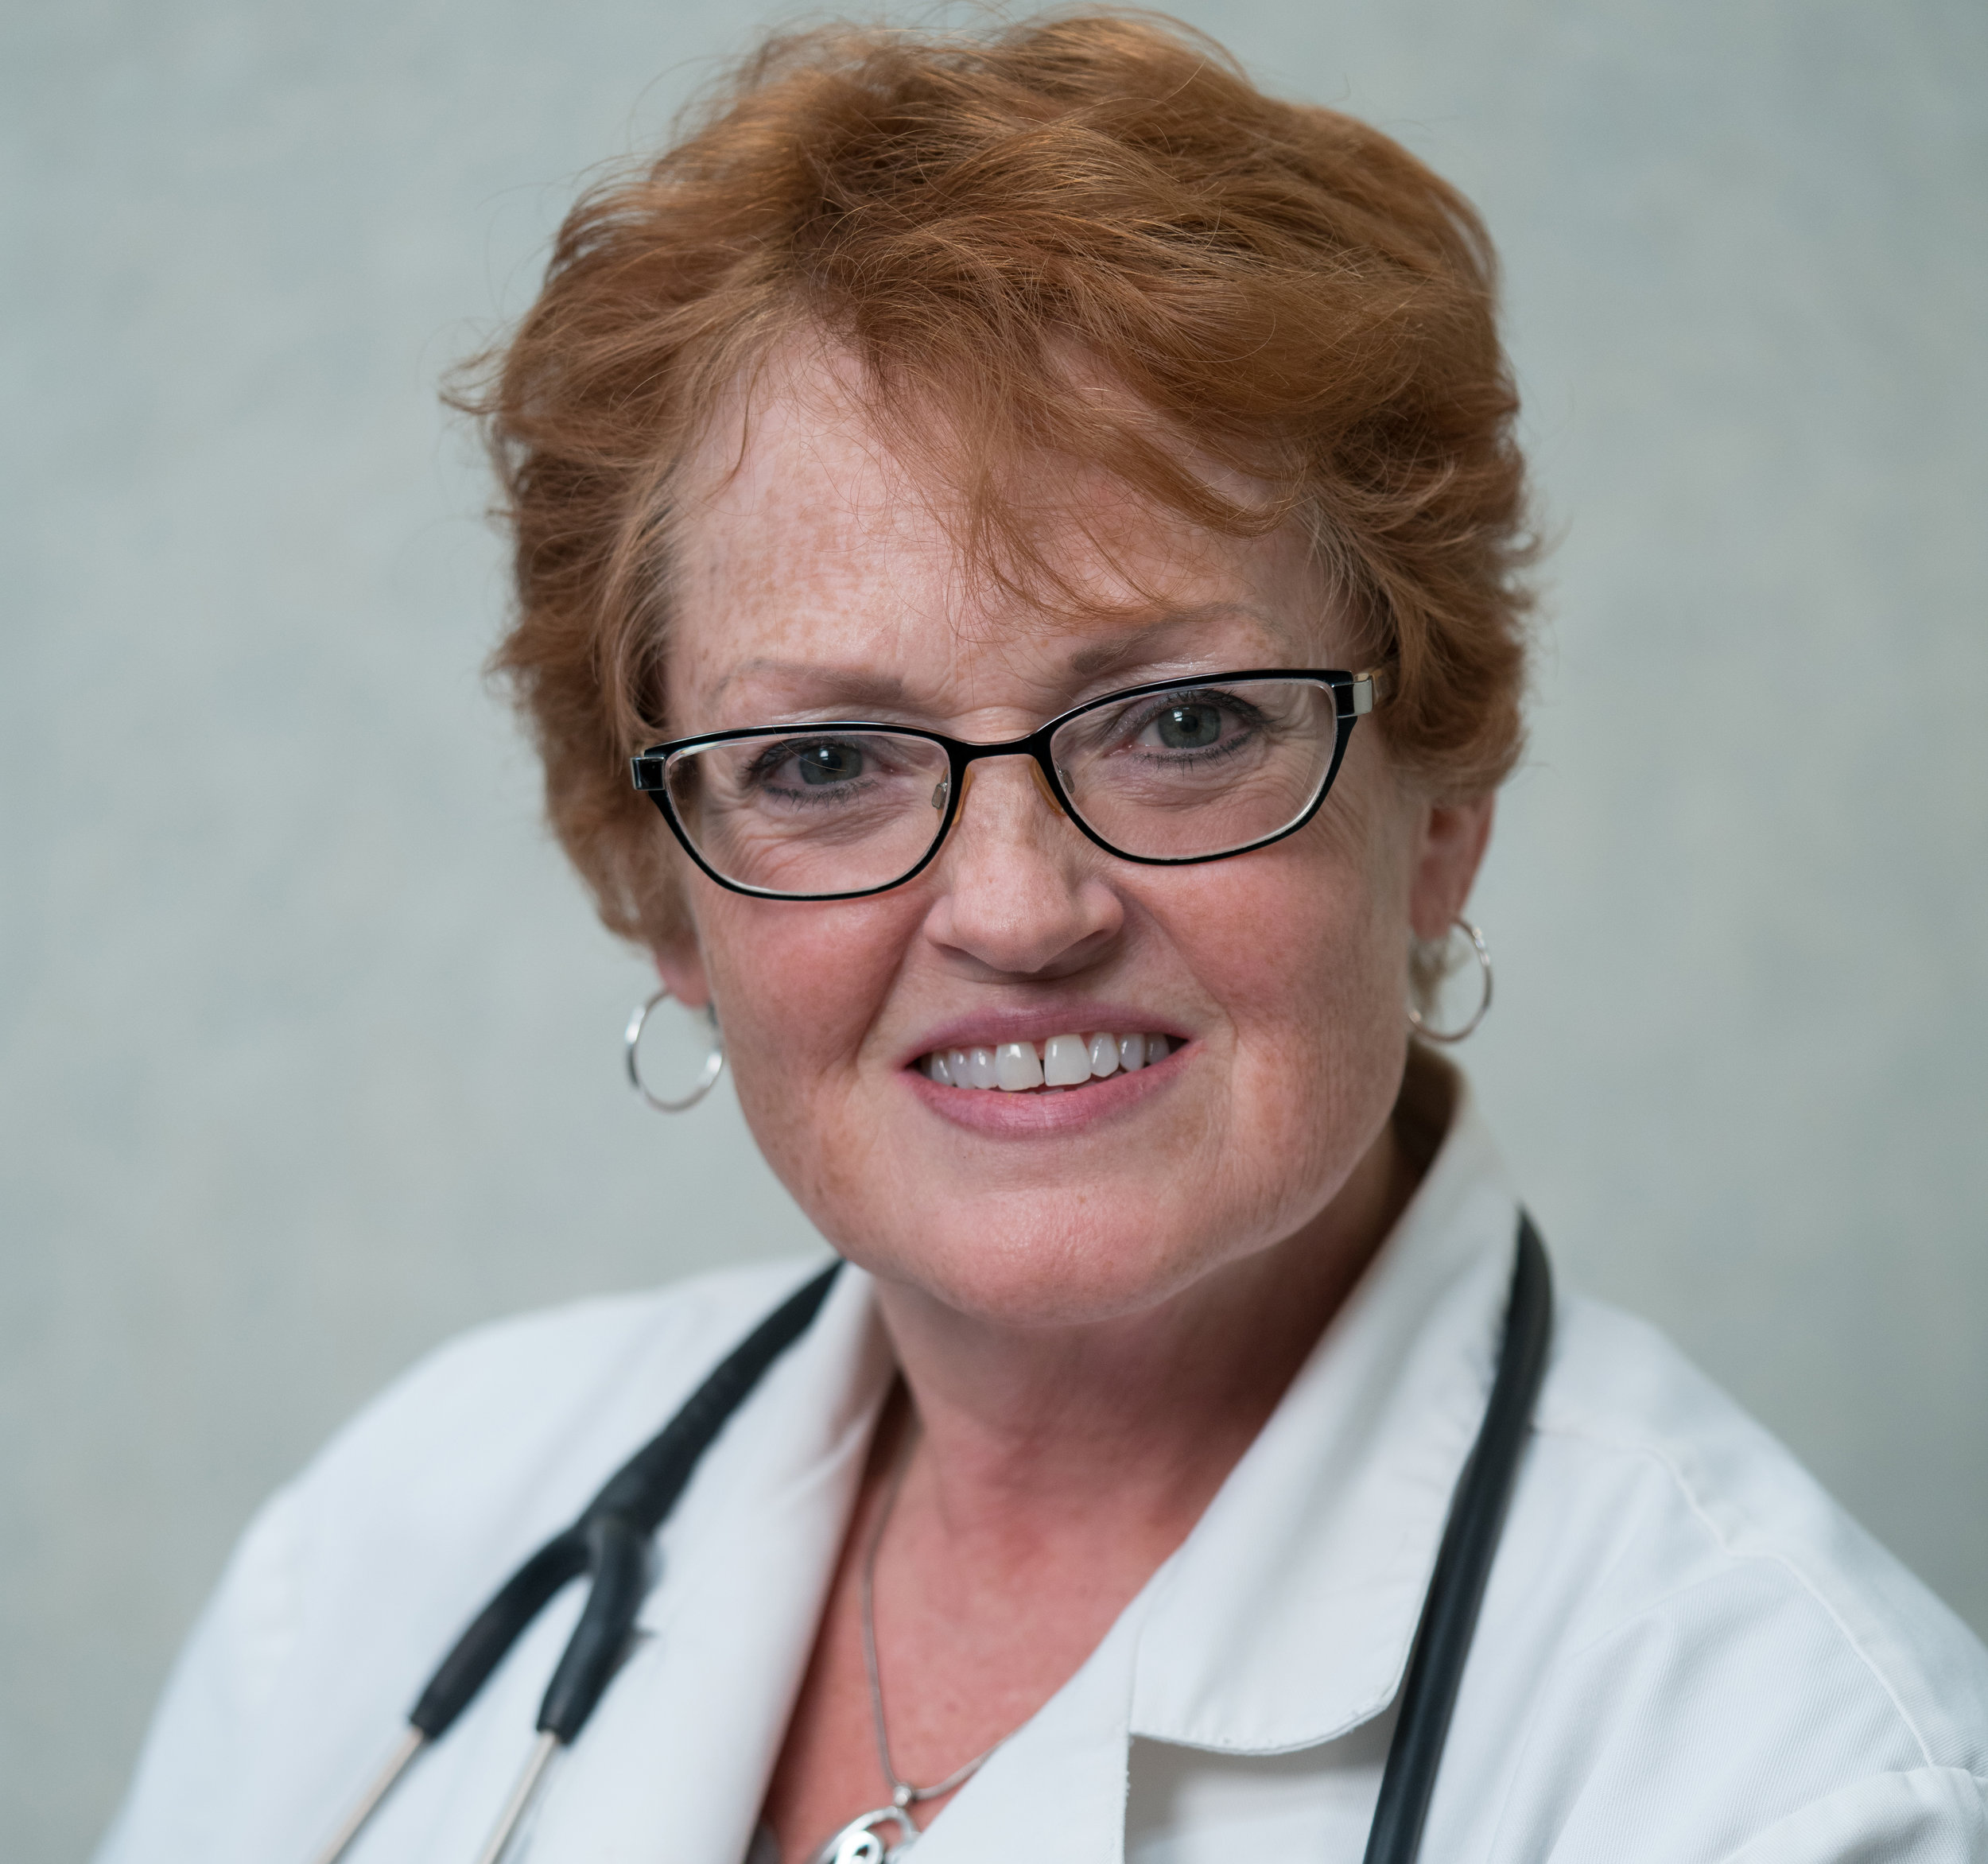 Reba J. Mahaffey: Nurse Practitioner - Reba was born in Jasper, Alabama. She moved to Northwest Indiana before she was in first grade. Her schooling was at a Catholic Orphanage in East Chicago, Indiana. The Carmalite Nuns raised her from an early age with rules and chores that were to be followed daily which is where she first learned discipline and hard work. Reba then attended Calumet High School in Northwest Indiana. For her professional studies she attended Purdue University where she earned an Associate's Degree in Nursing followed quickly by a Bachelor's degree in Nursing. Reba made the Dean's list and her grade point average allowed her to be awarded a grant from the city. She was then able to complete her Master's degree in Nursing with a specialty in Pain Management. Her mentorship with a pain specialist was with Dr. Judith Paice, Phd. at the University of Chicago. Reba also worked with Dr. Timothy Lubenow MD and with the Metronic Corporation, training to assist with surgeries that implanted spinal cord stimulators and continuous intrathecal pumps. Reba has made her career in healthcare, because she is devoted to helping others learn to live a long and healthy life. She takes great satisfaction in bringing good humor and cheer to her patients and their families.